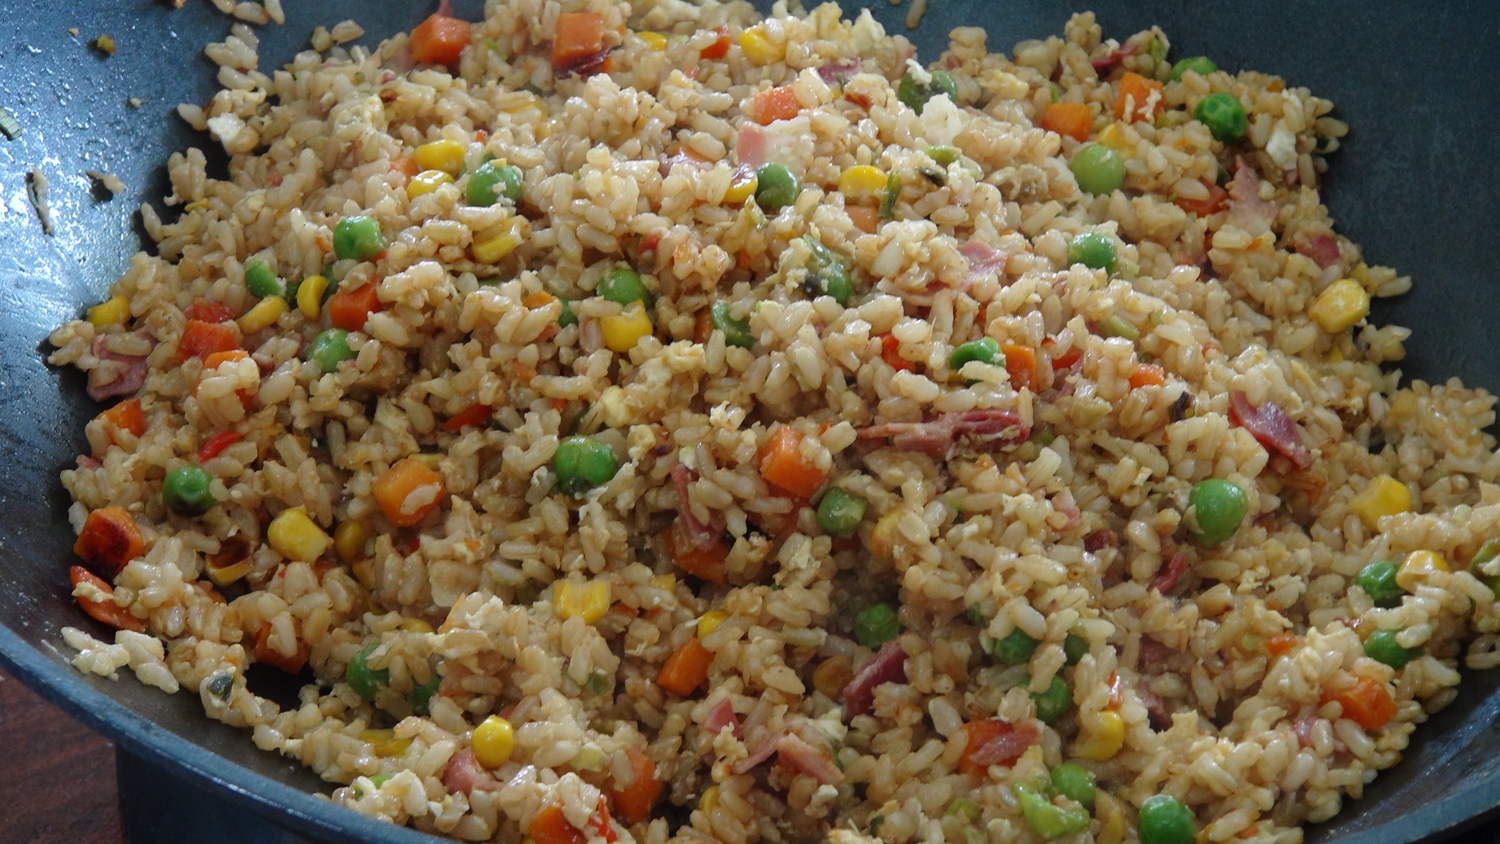 Chinese Fried Rice Recipe - The Frugal Chef